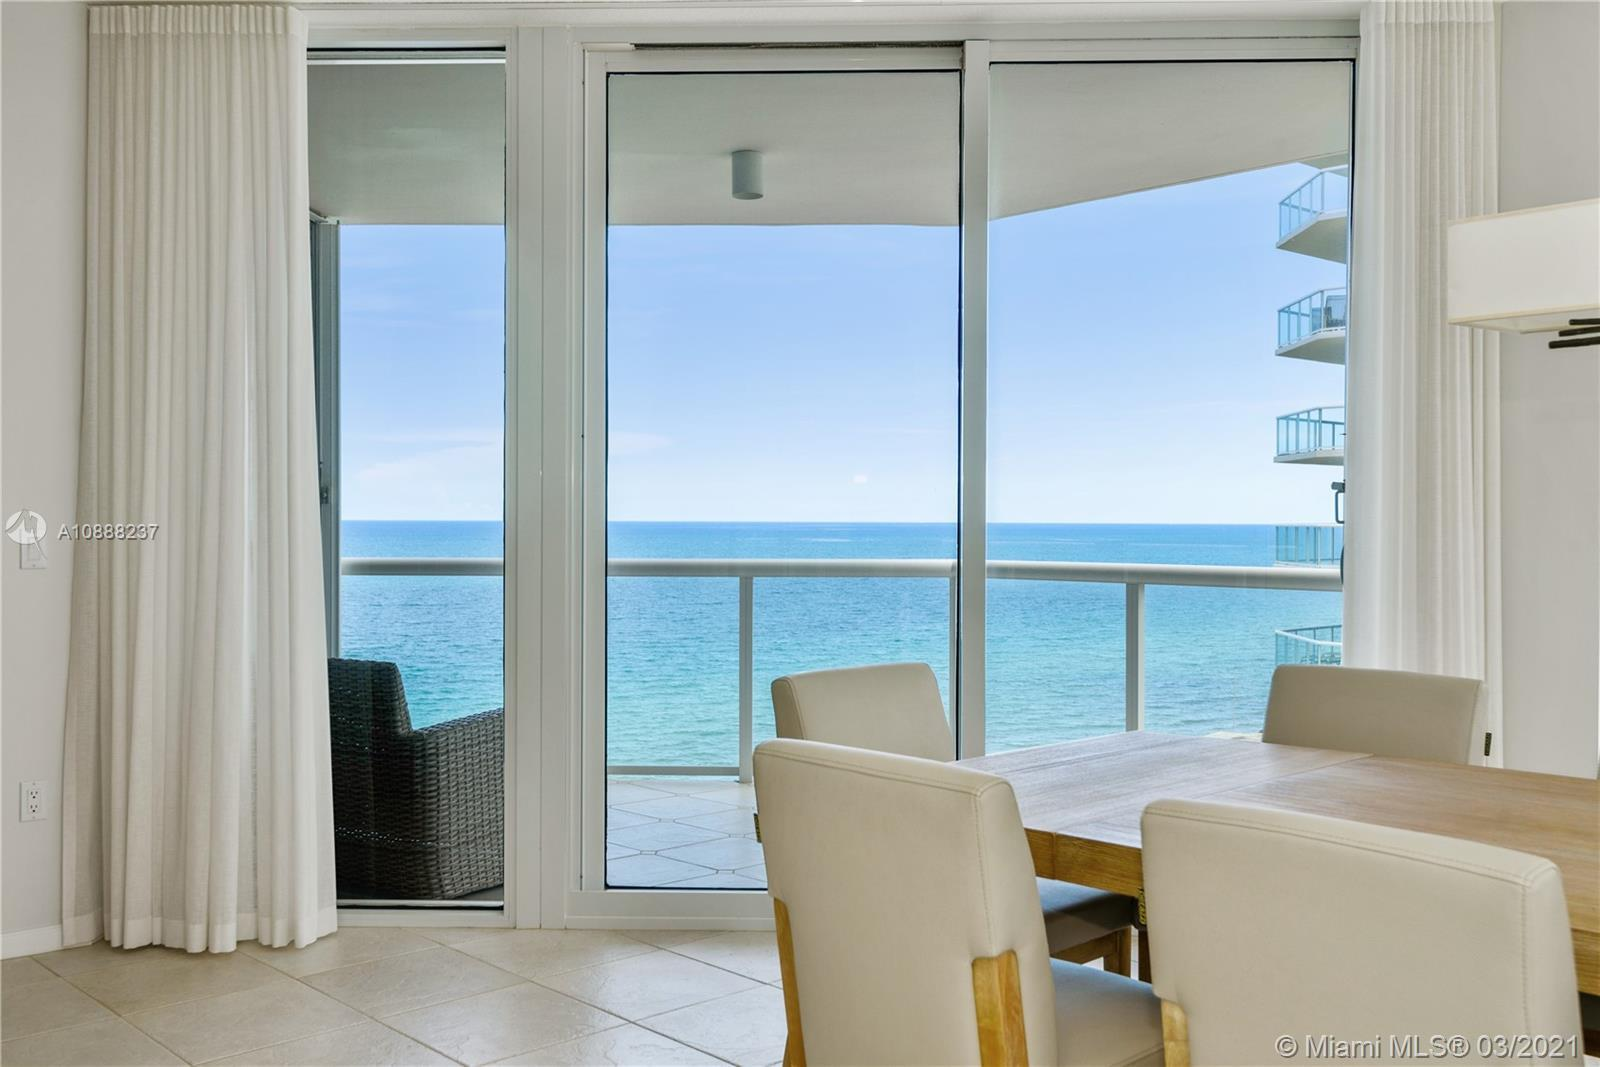 3 Bedrooms !All Ocean & Intracoastal views from this lovely bright modern turnkey beauty.Wrap balcon